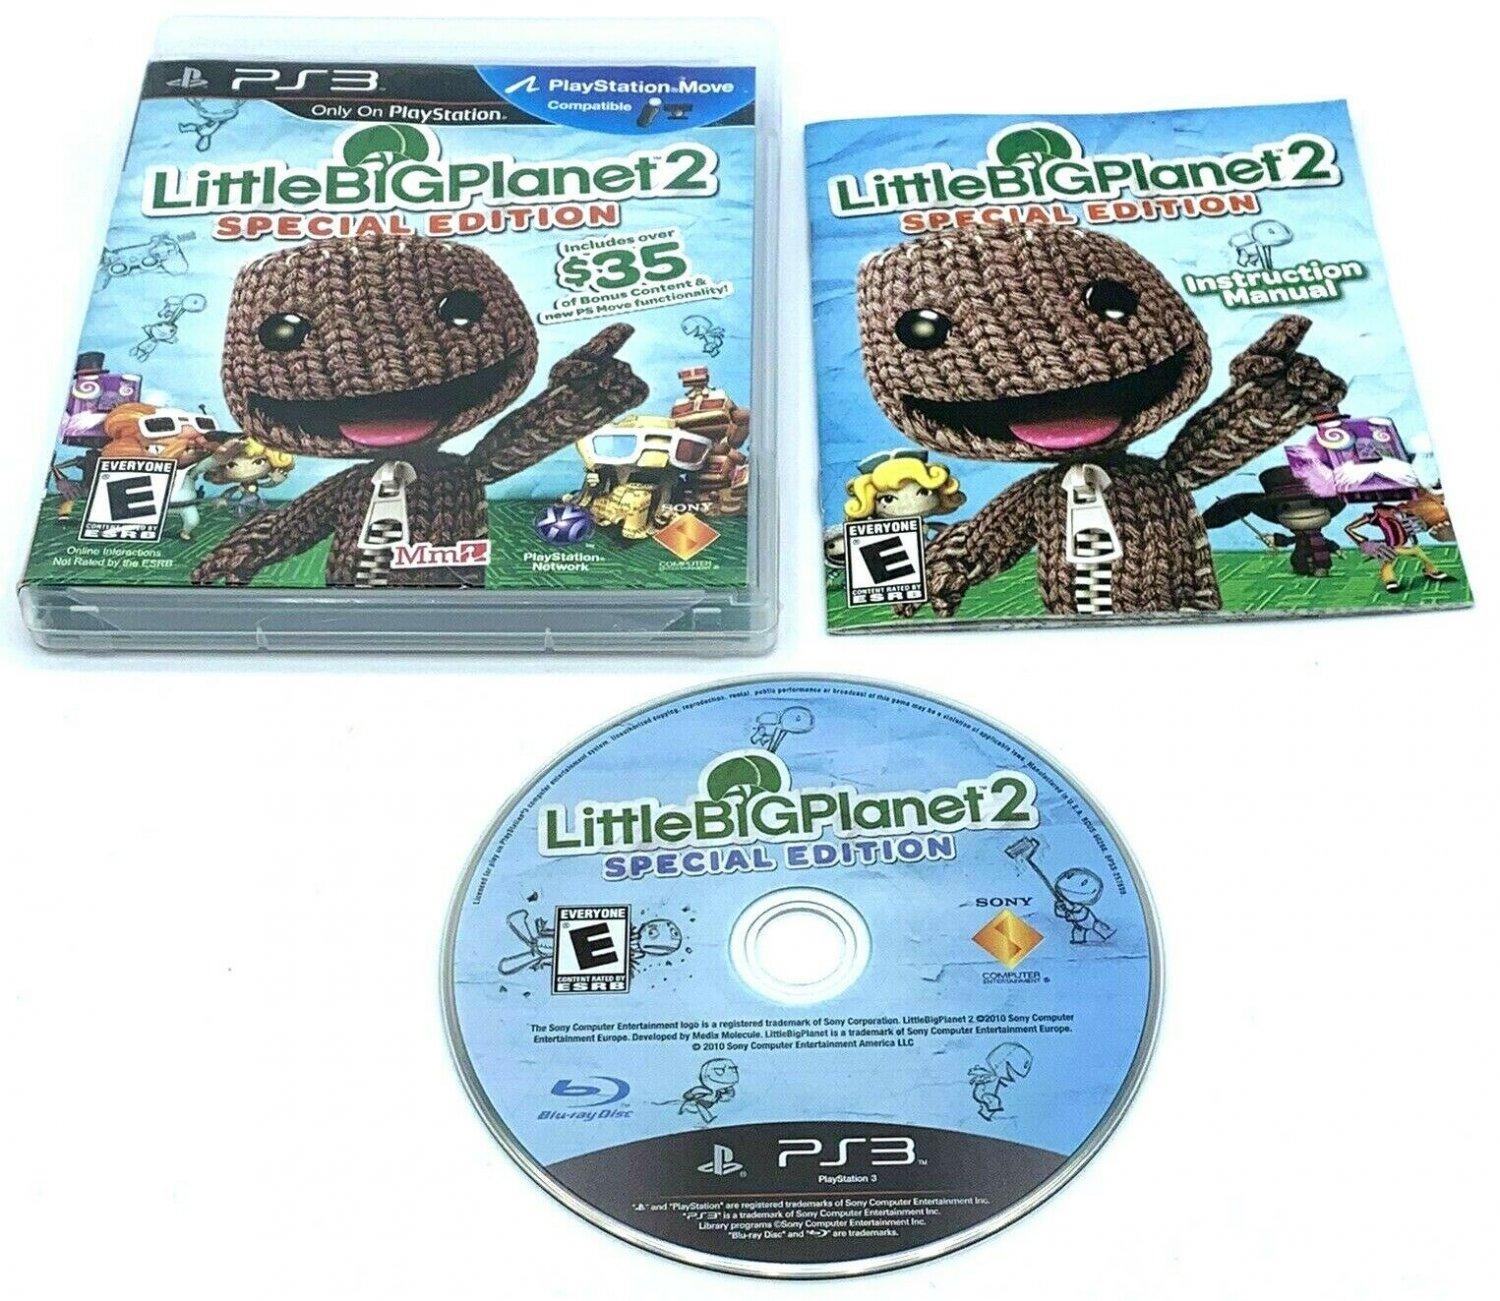 LittleBigPlanet 2 Special Edition PlayStation 3 PS3 Complete With Manual CIB